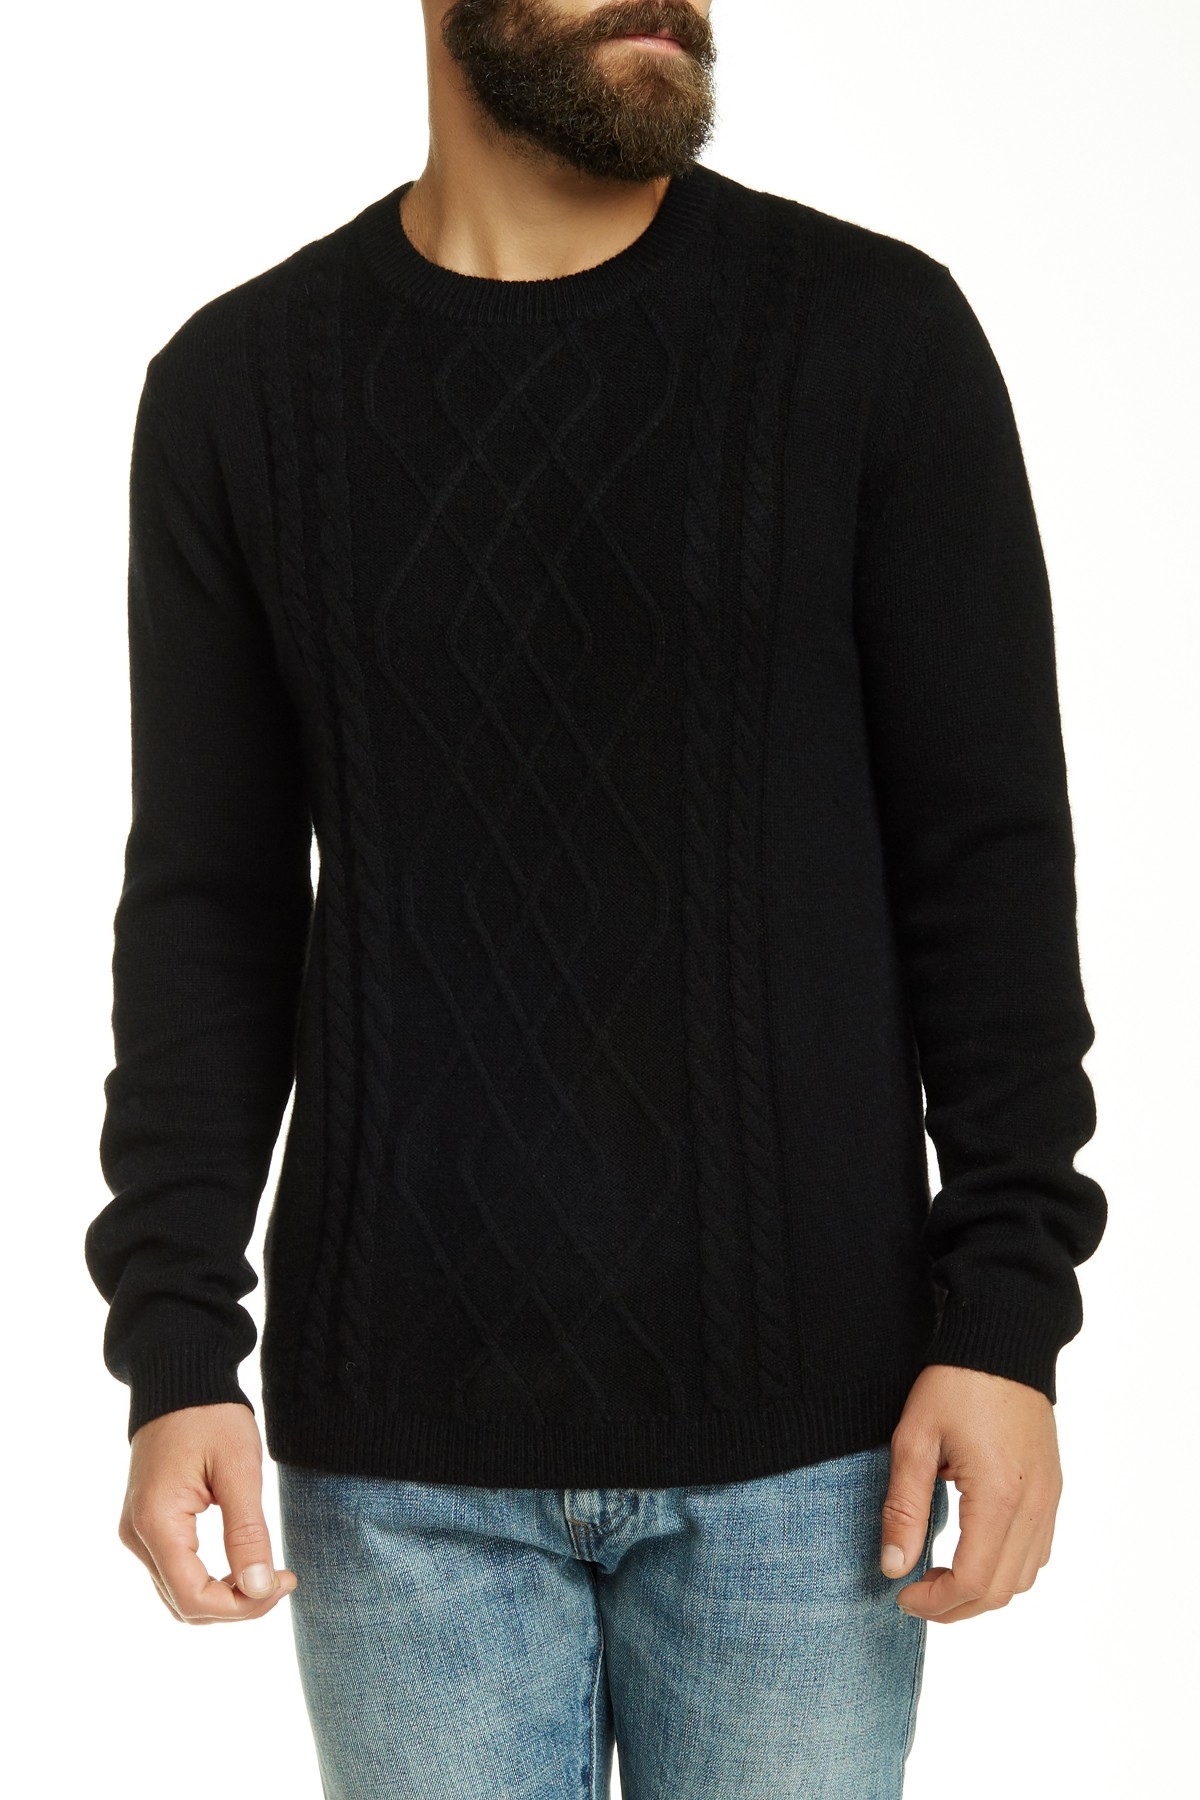 These deals are going fast! 75% Off polo ralph lauren cream cable-knit crew-neck sweater l. Now $ Was $